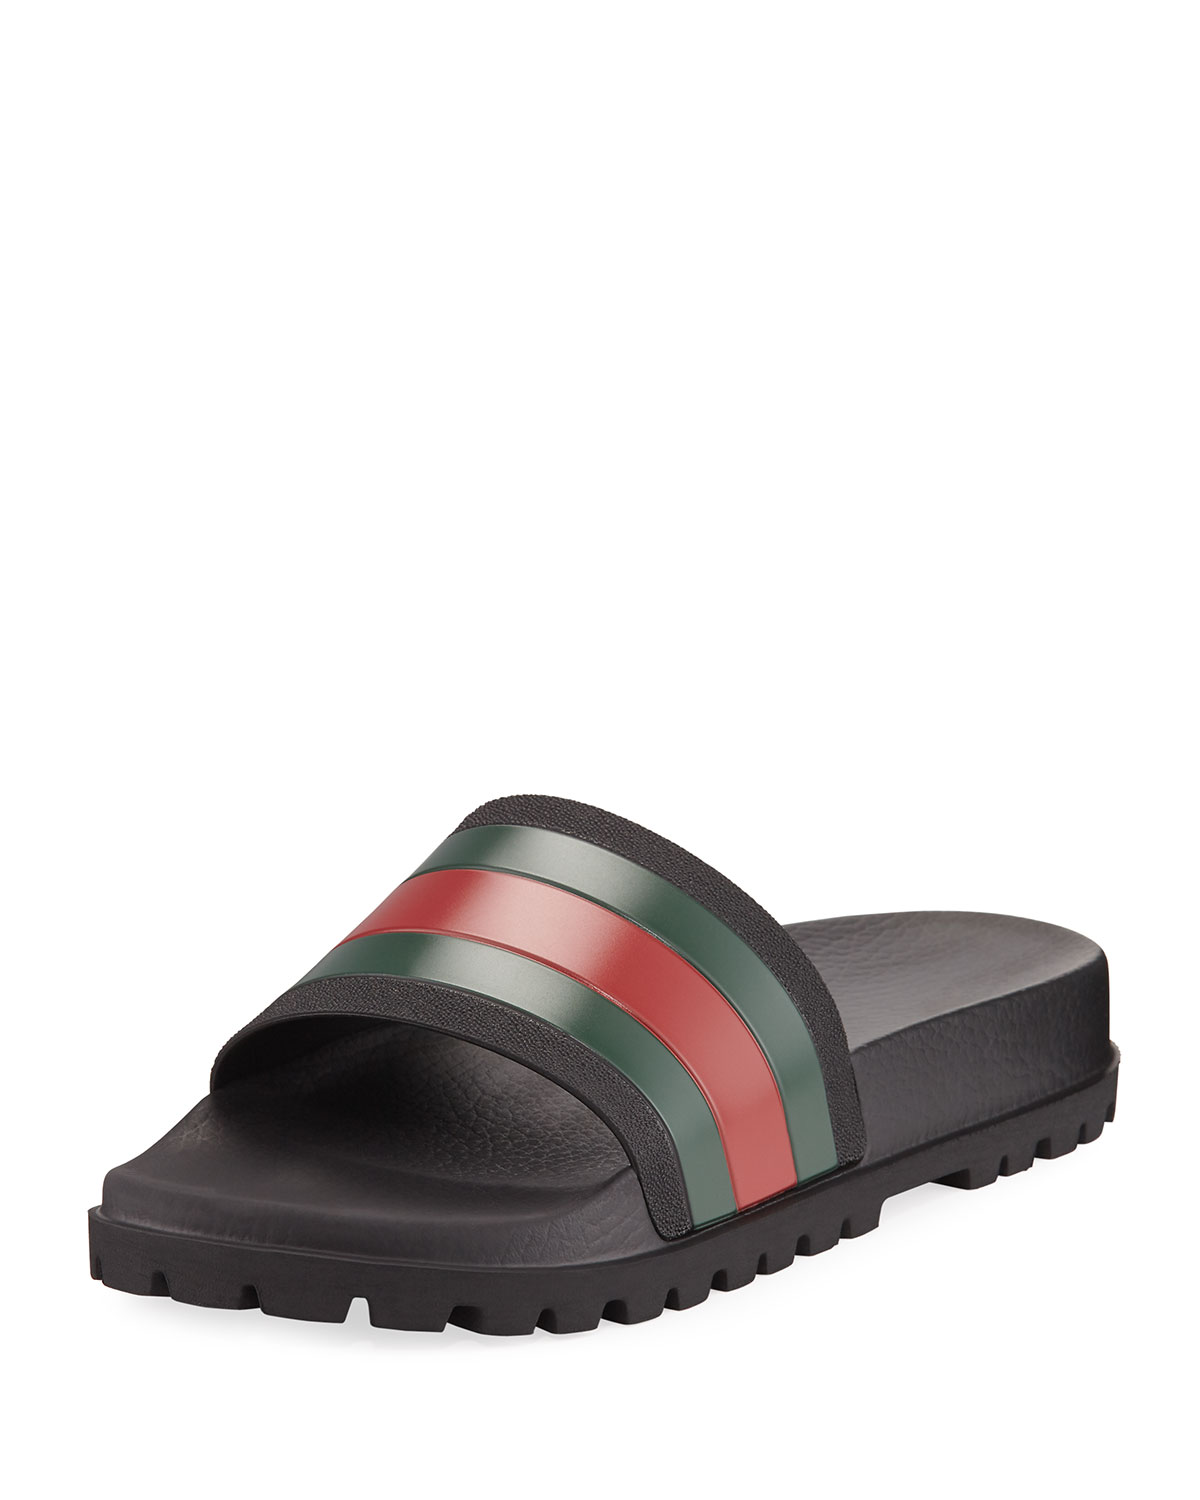 62eaa2ad594f Gucci Pursuit Trek Web Slide Sandal